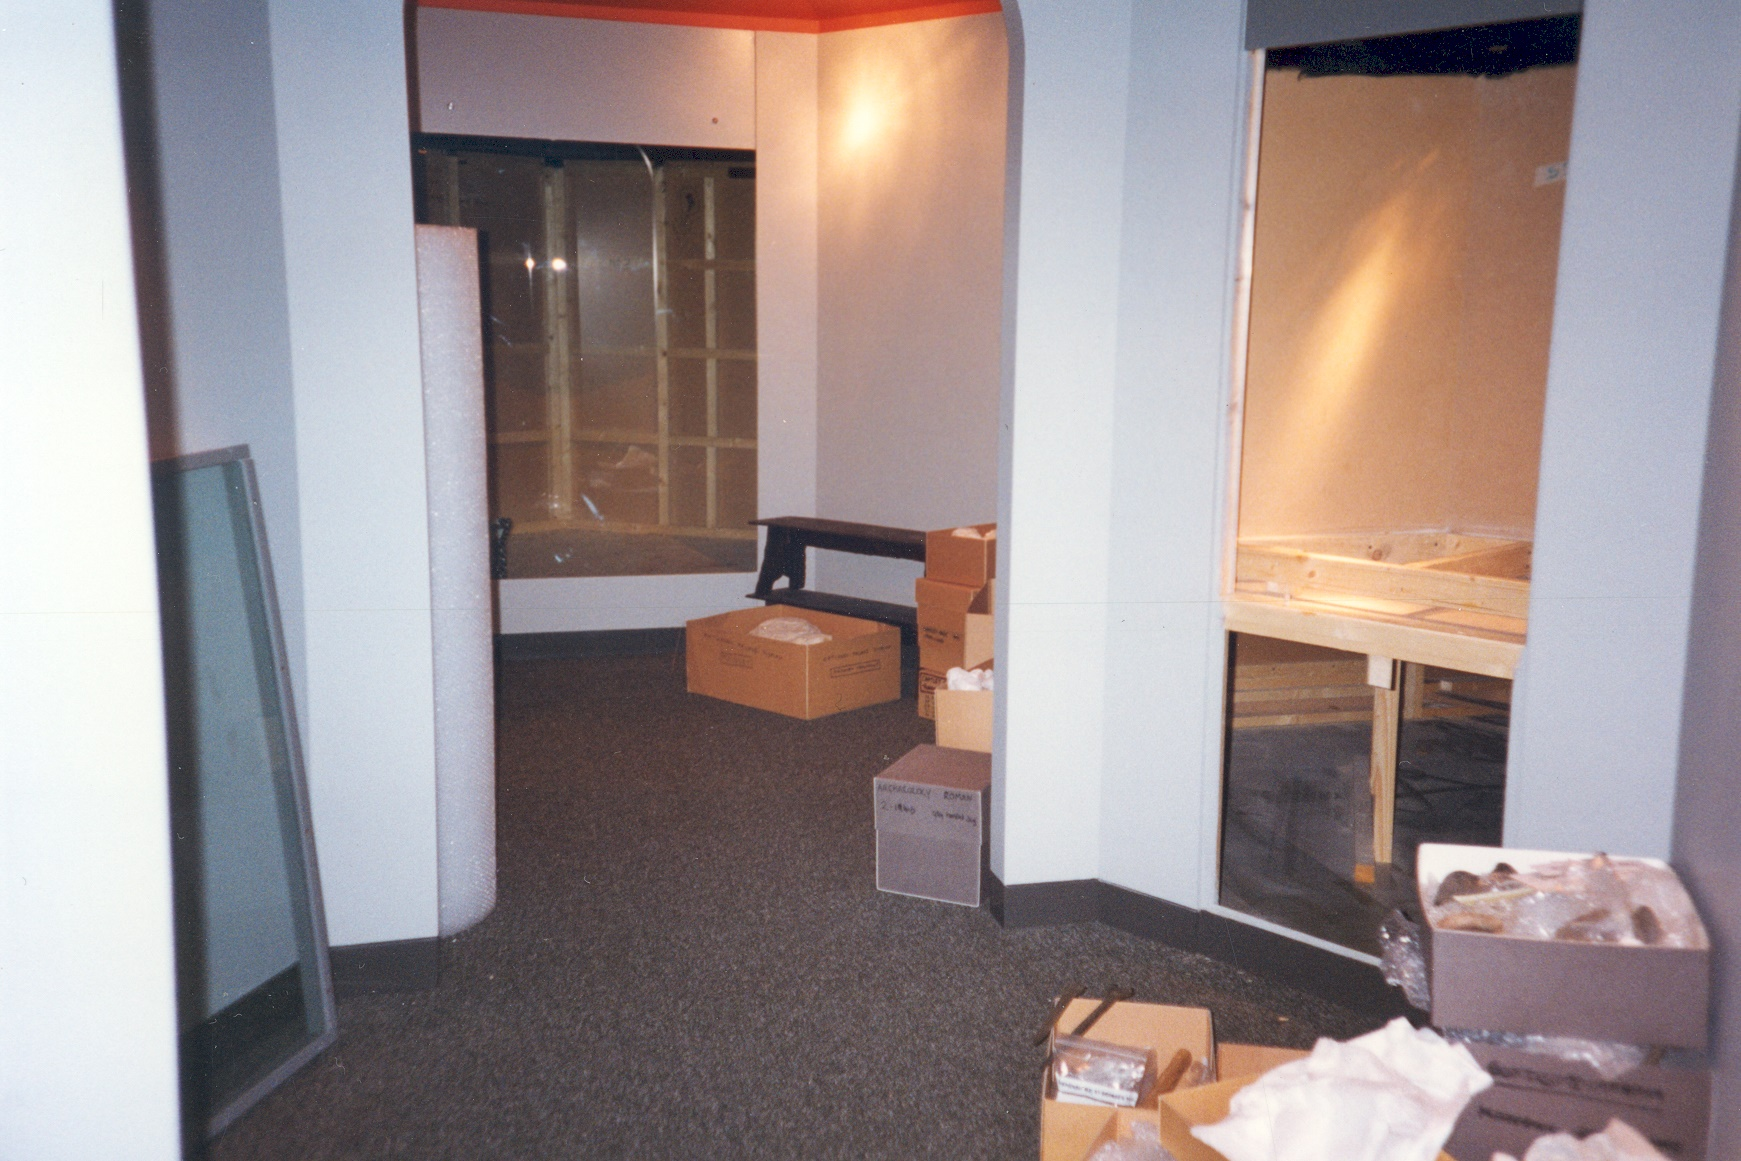 The interior of Elmbridge Museum during refurbishment, May to December 1996, showing empty Pre-historic Elmbridge and Oatlands Palace display cases with boxed objects on the floor.